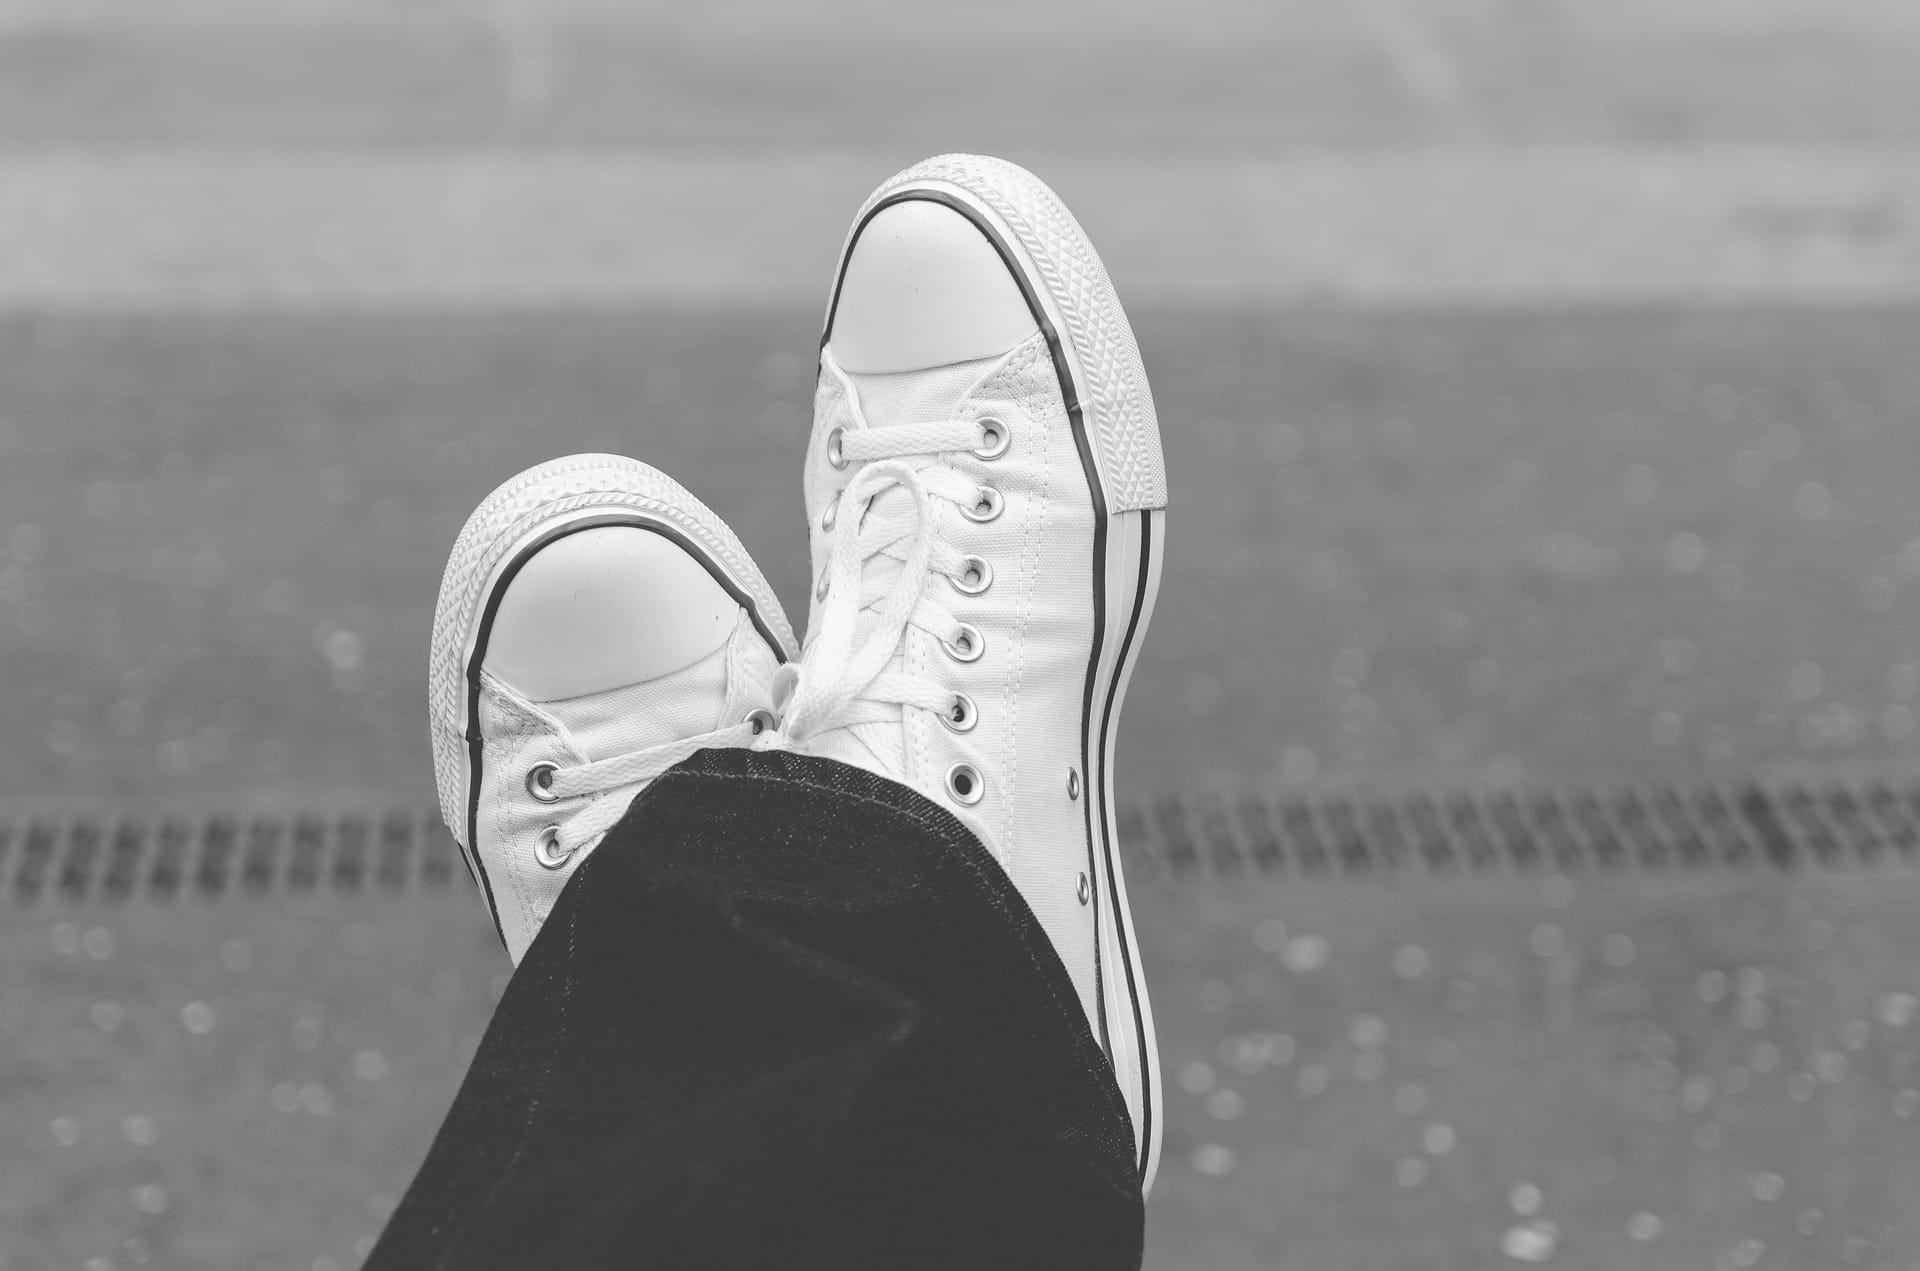 silver sneakers | 2 white shoes